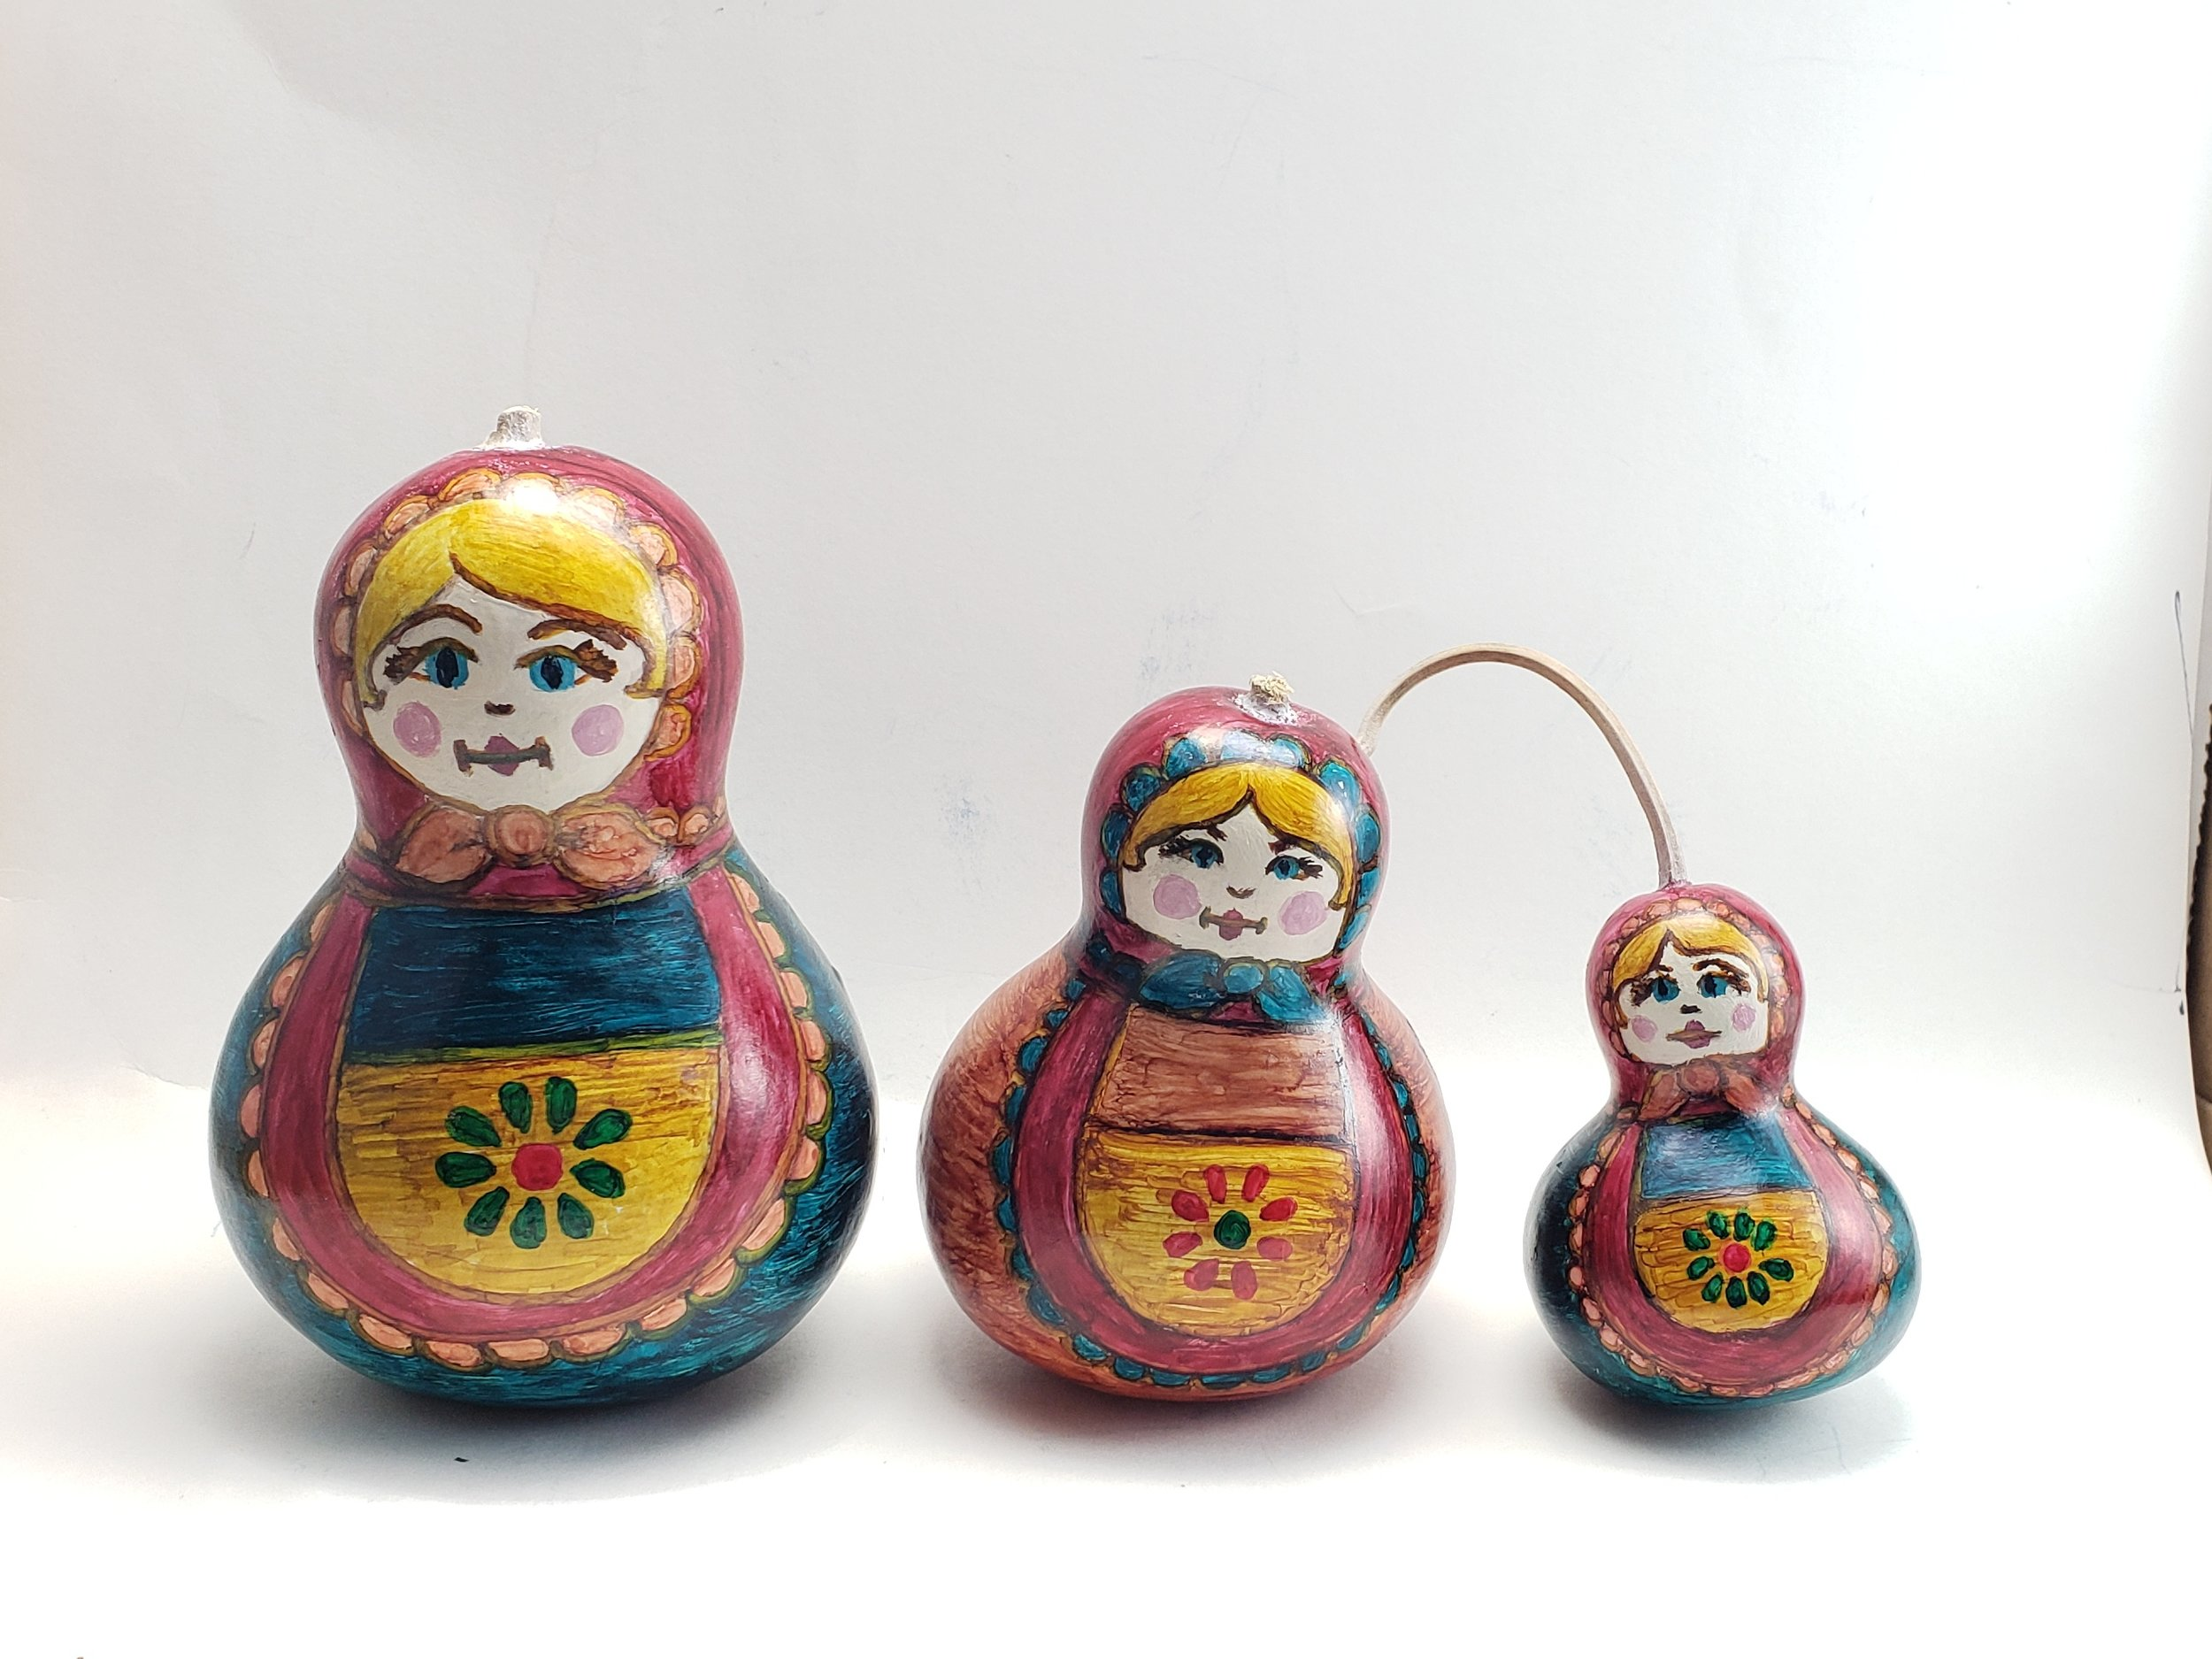 Matryoska Nesting Dolls 2019    Alcohol Ink on Bottle Gourds    $125